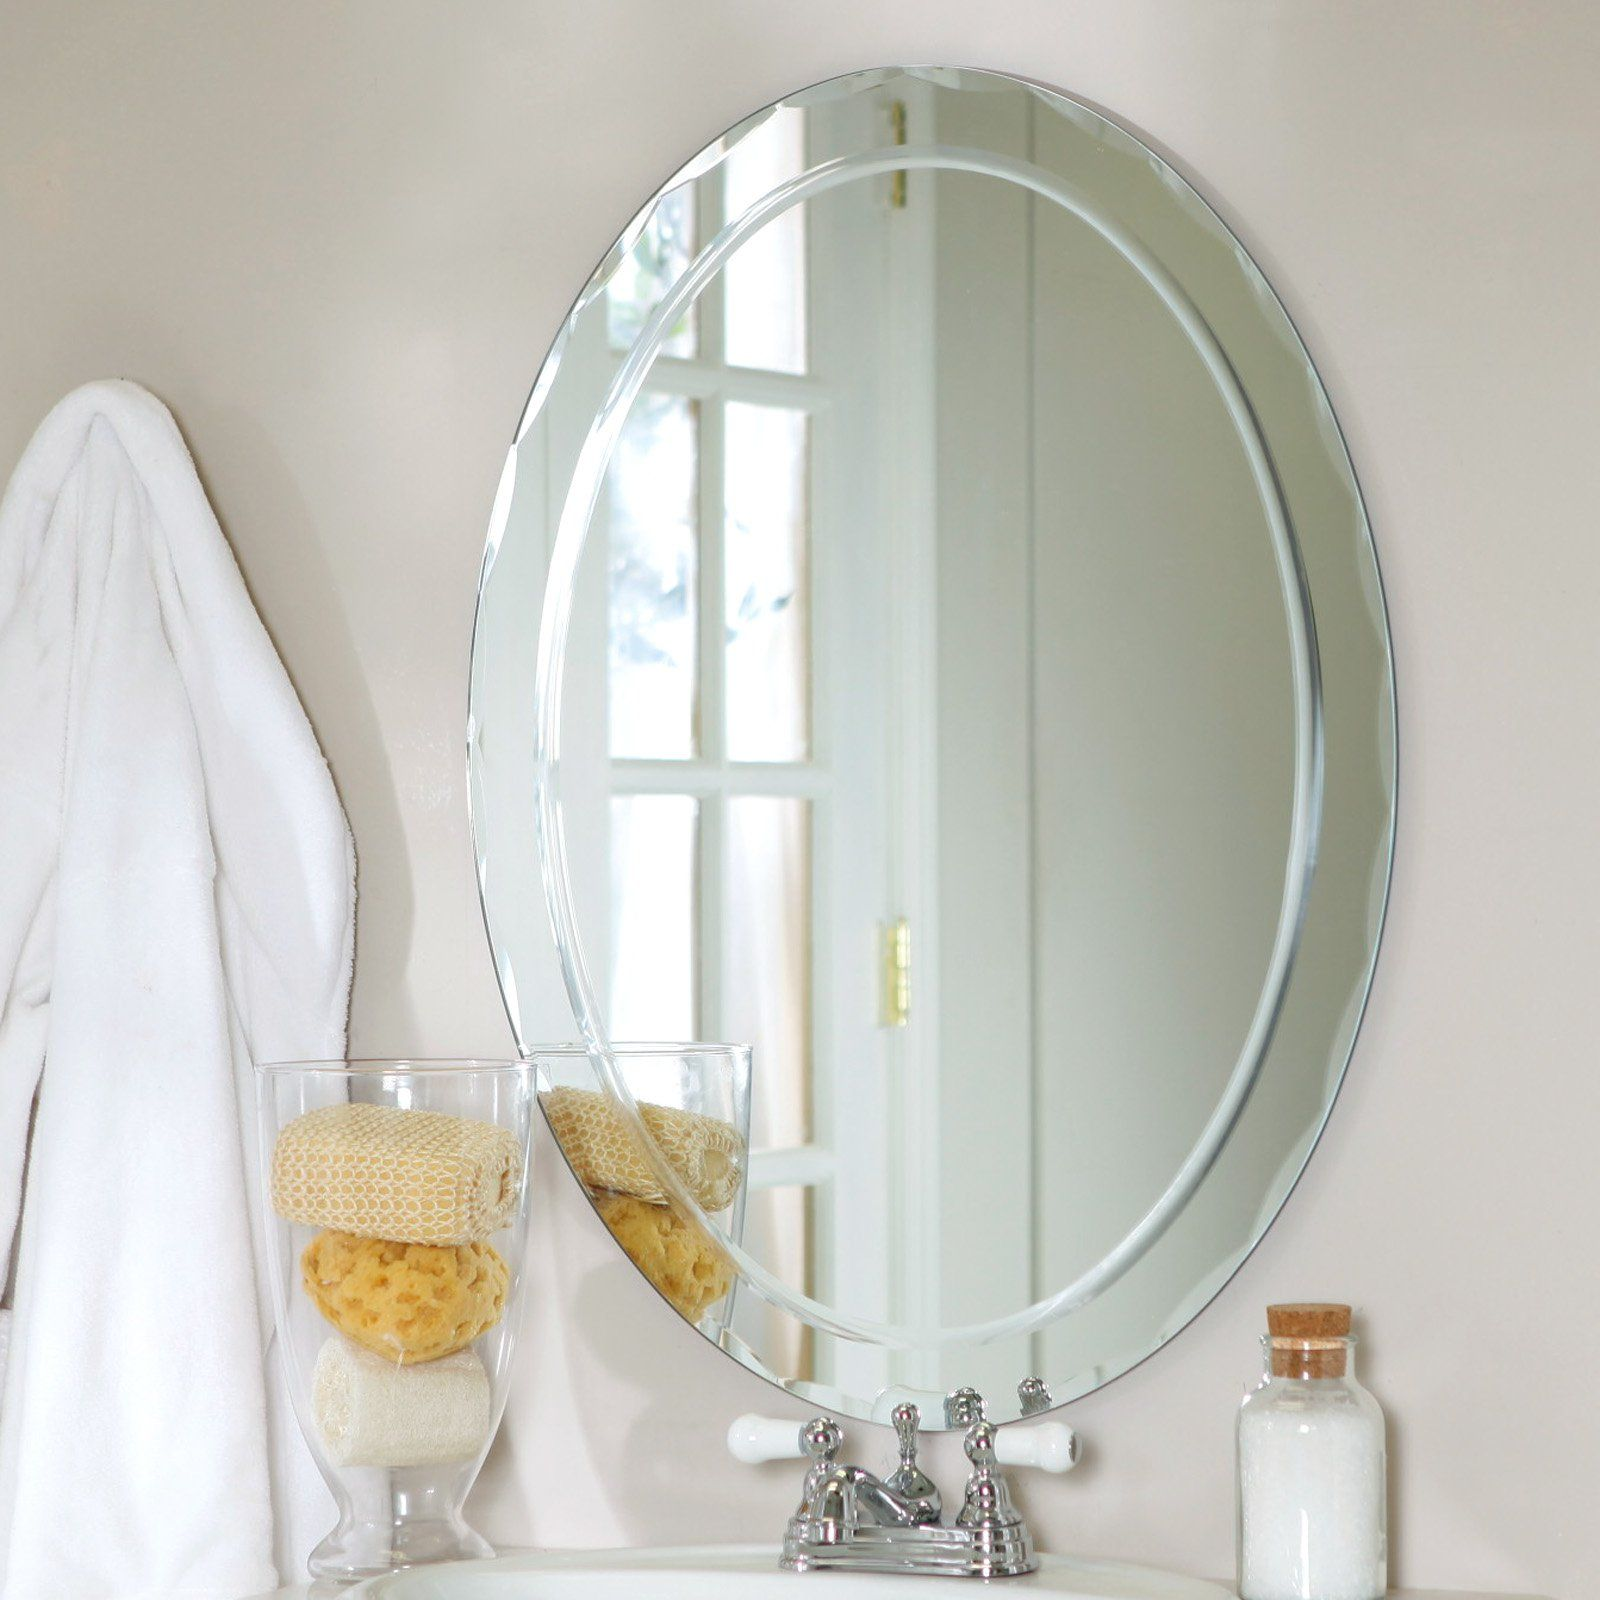 Frameless Aldo Wall Mirror   23.5W X 31.5H In.   Wall Mirrors At Hayneedle